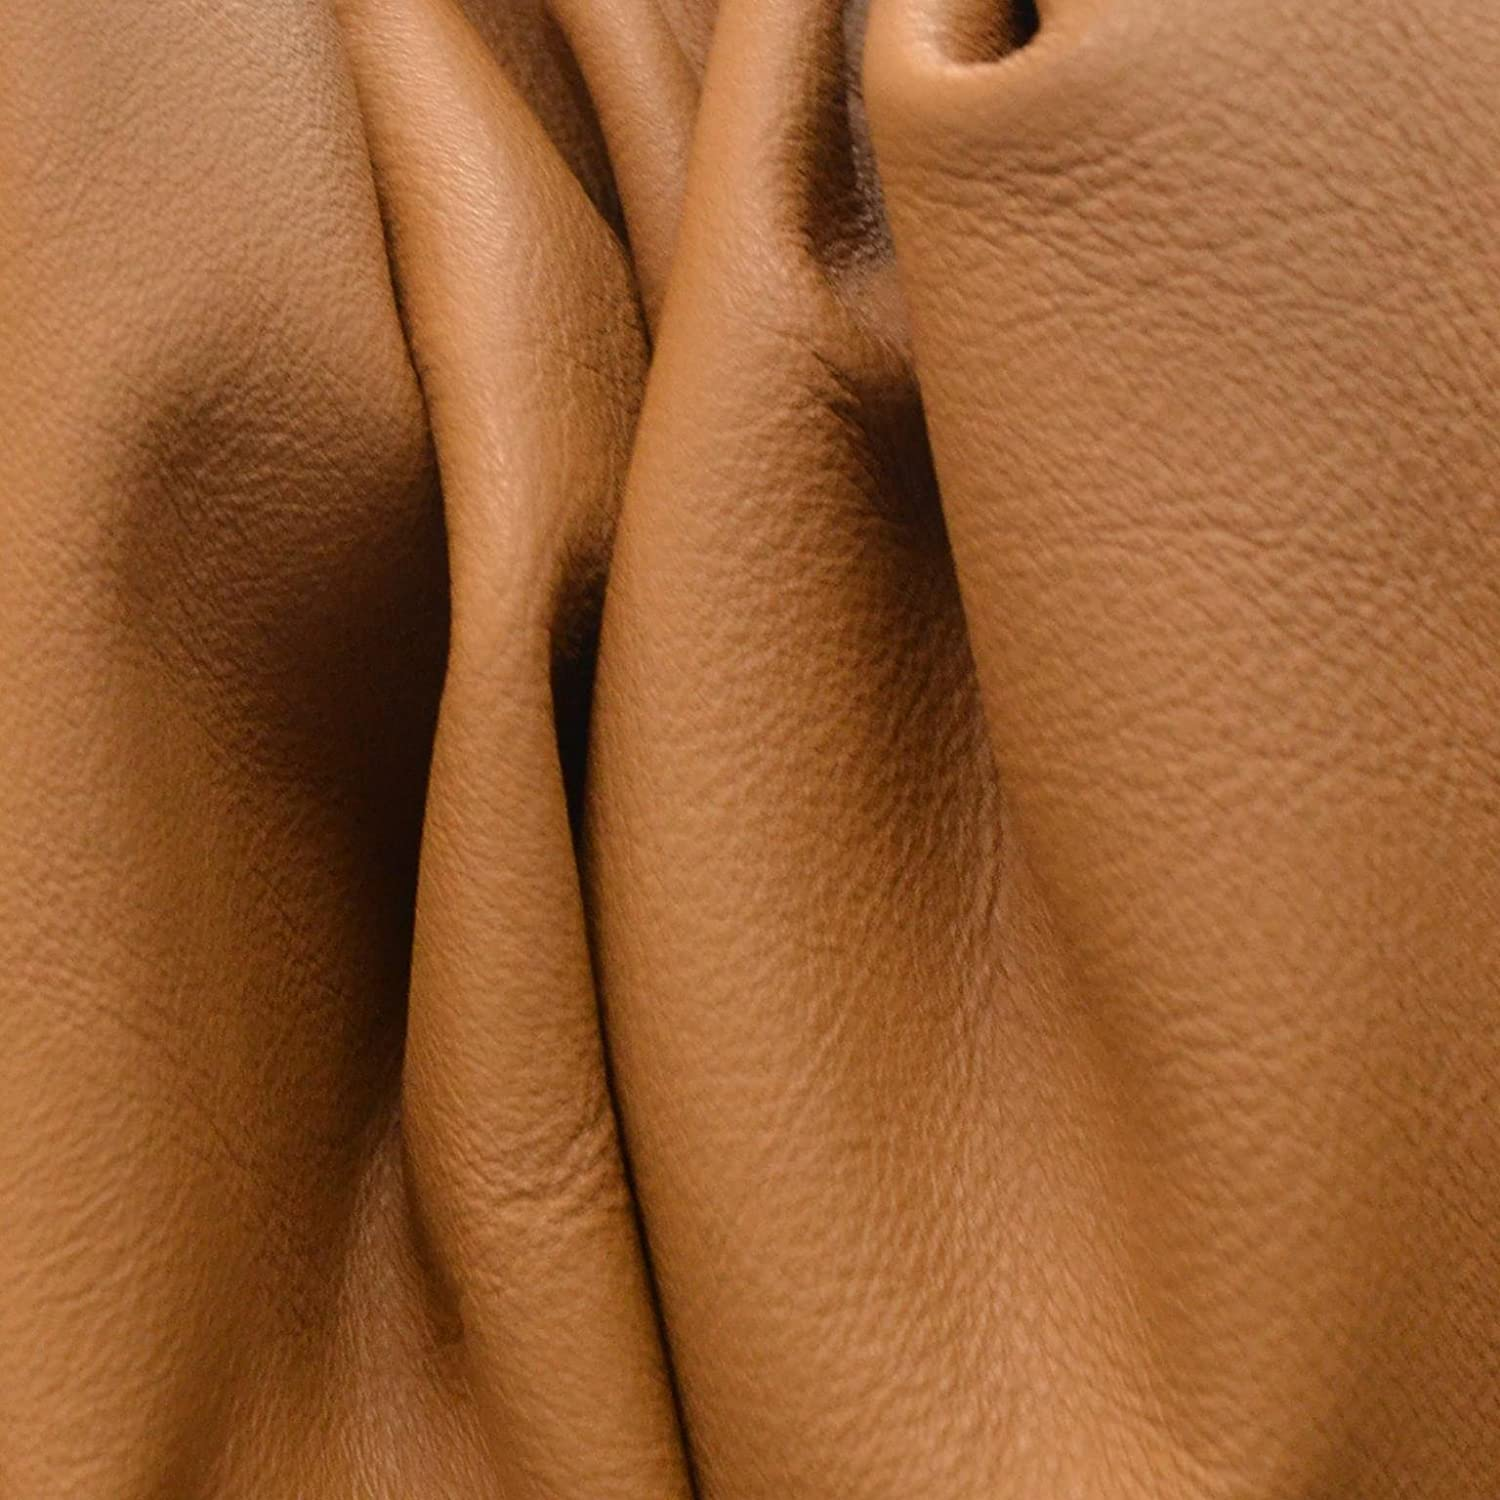 Amazon.com: Leather Chap Cow Side Hide Camel Tan 21.2 Sq Ft 3 Ounces Flat Grain- A: The Leather Guy of MN